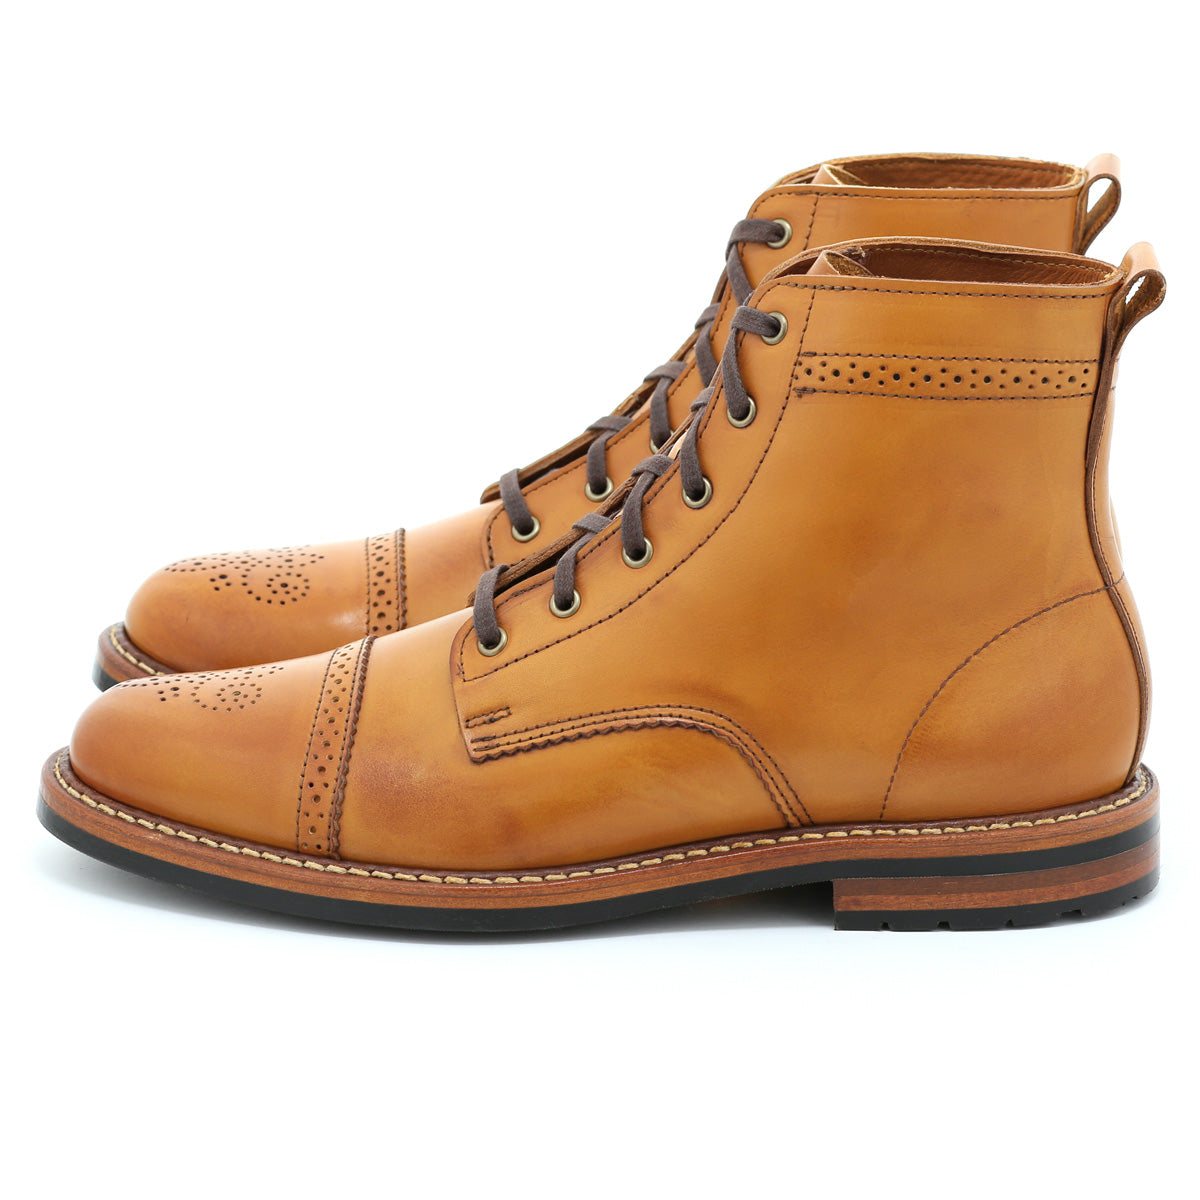 Brighton Boot - Amber Calf